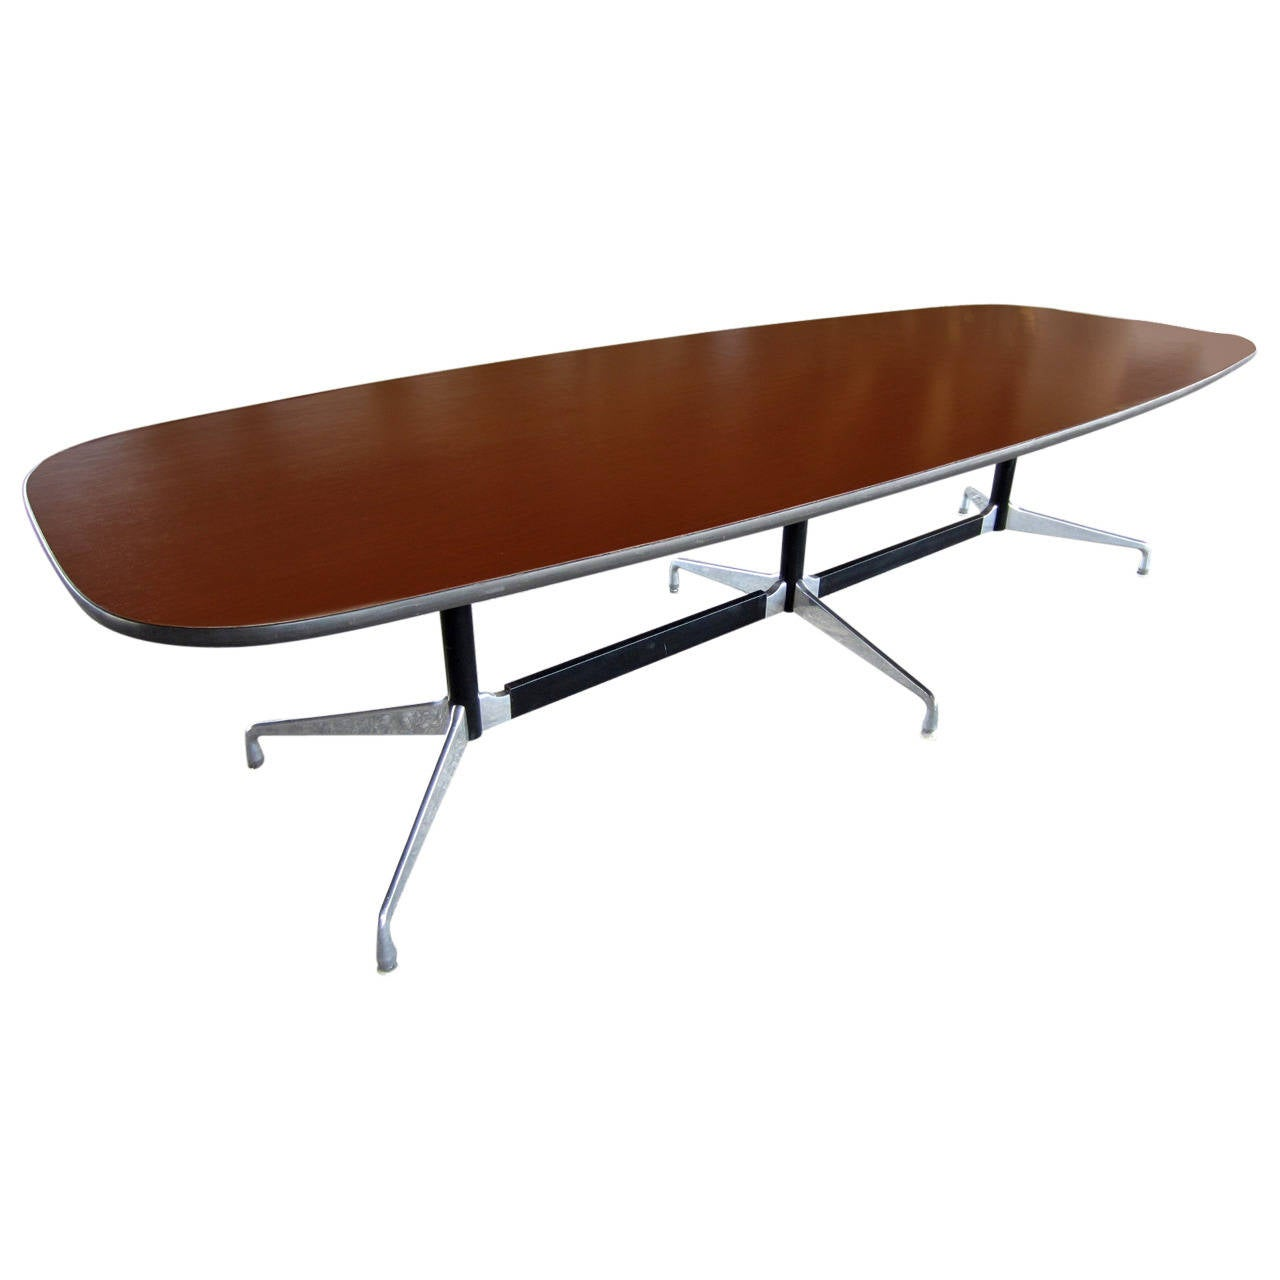 midcentury modern herman miller eames aluminum group dining table  - midcentury modern herman miller eames aluminum group dining table